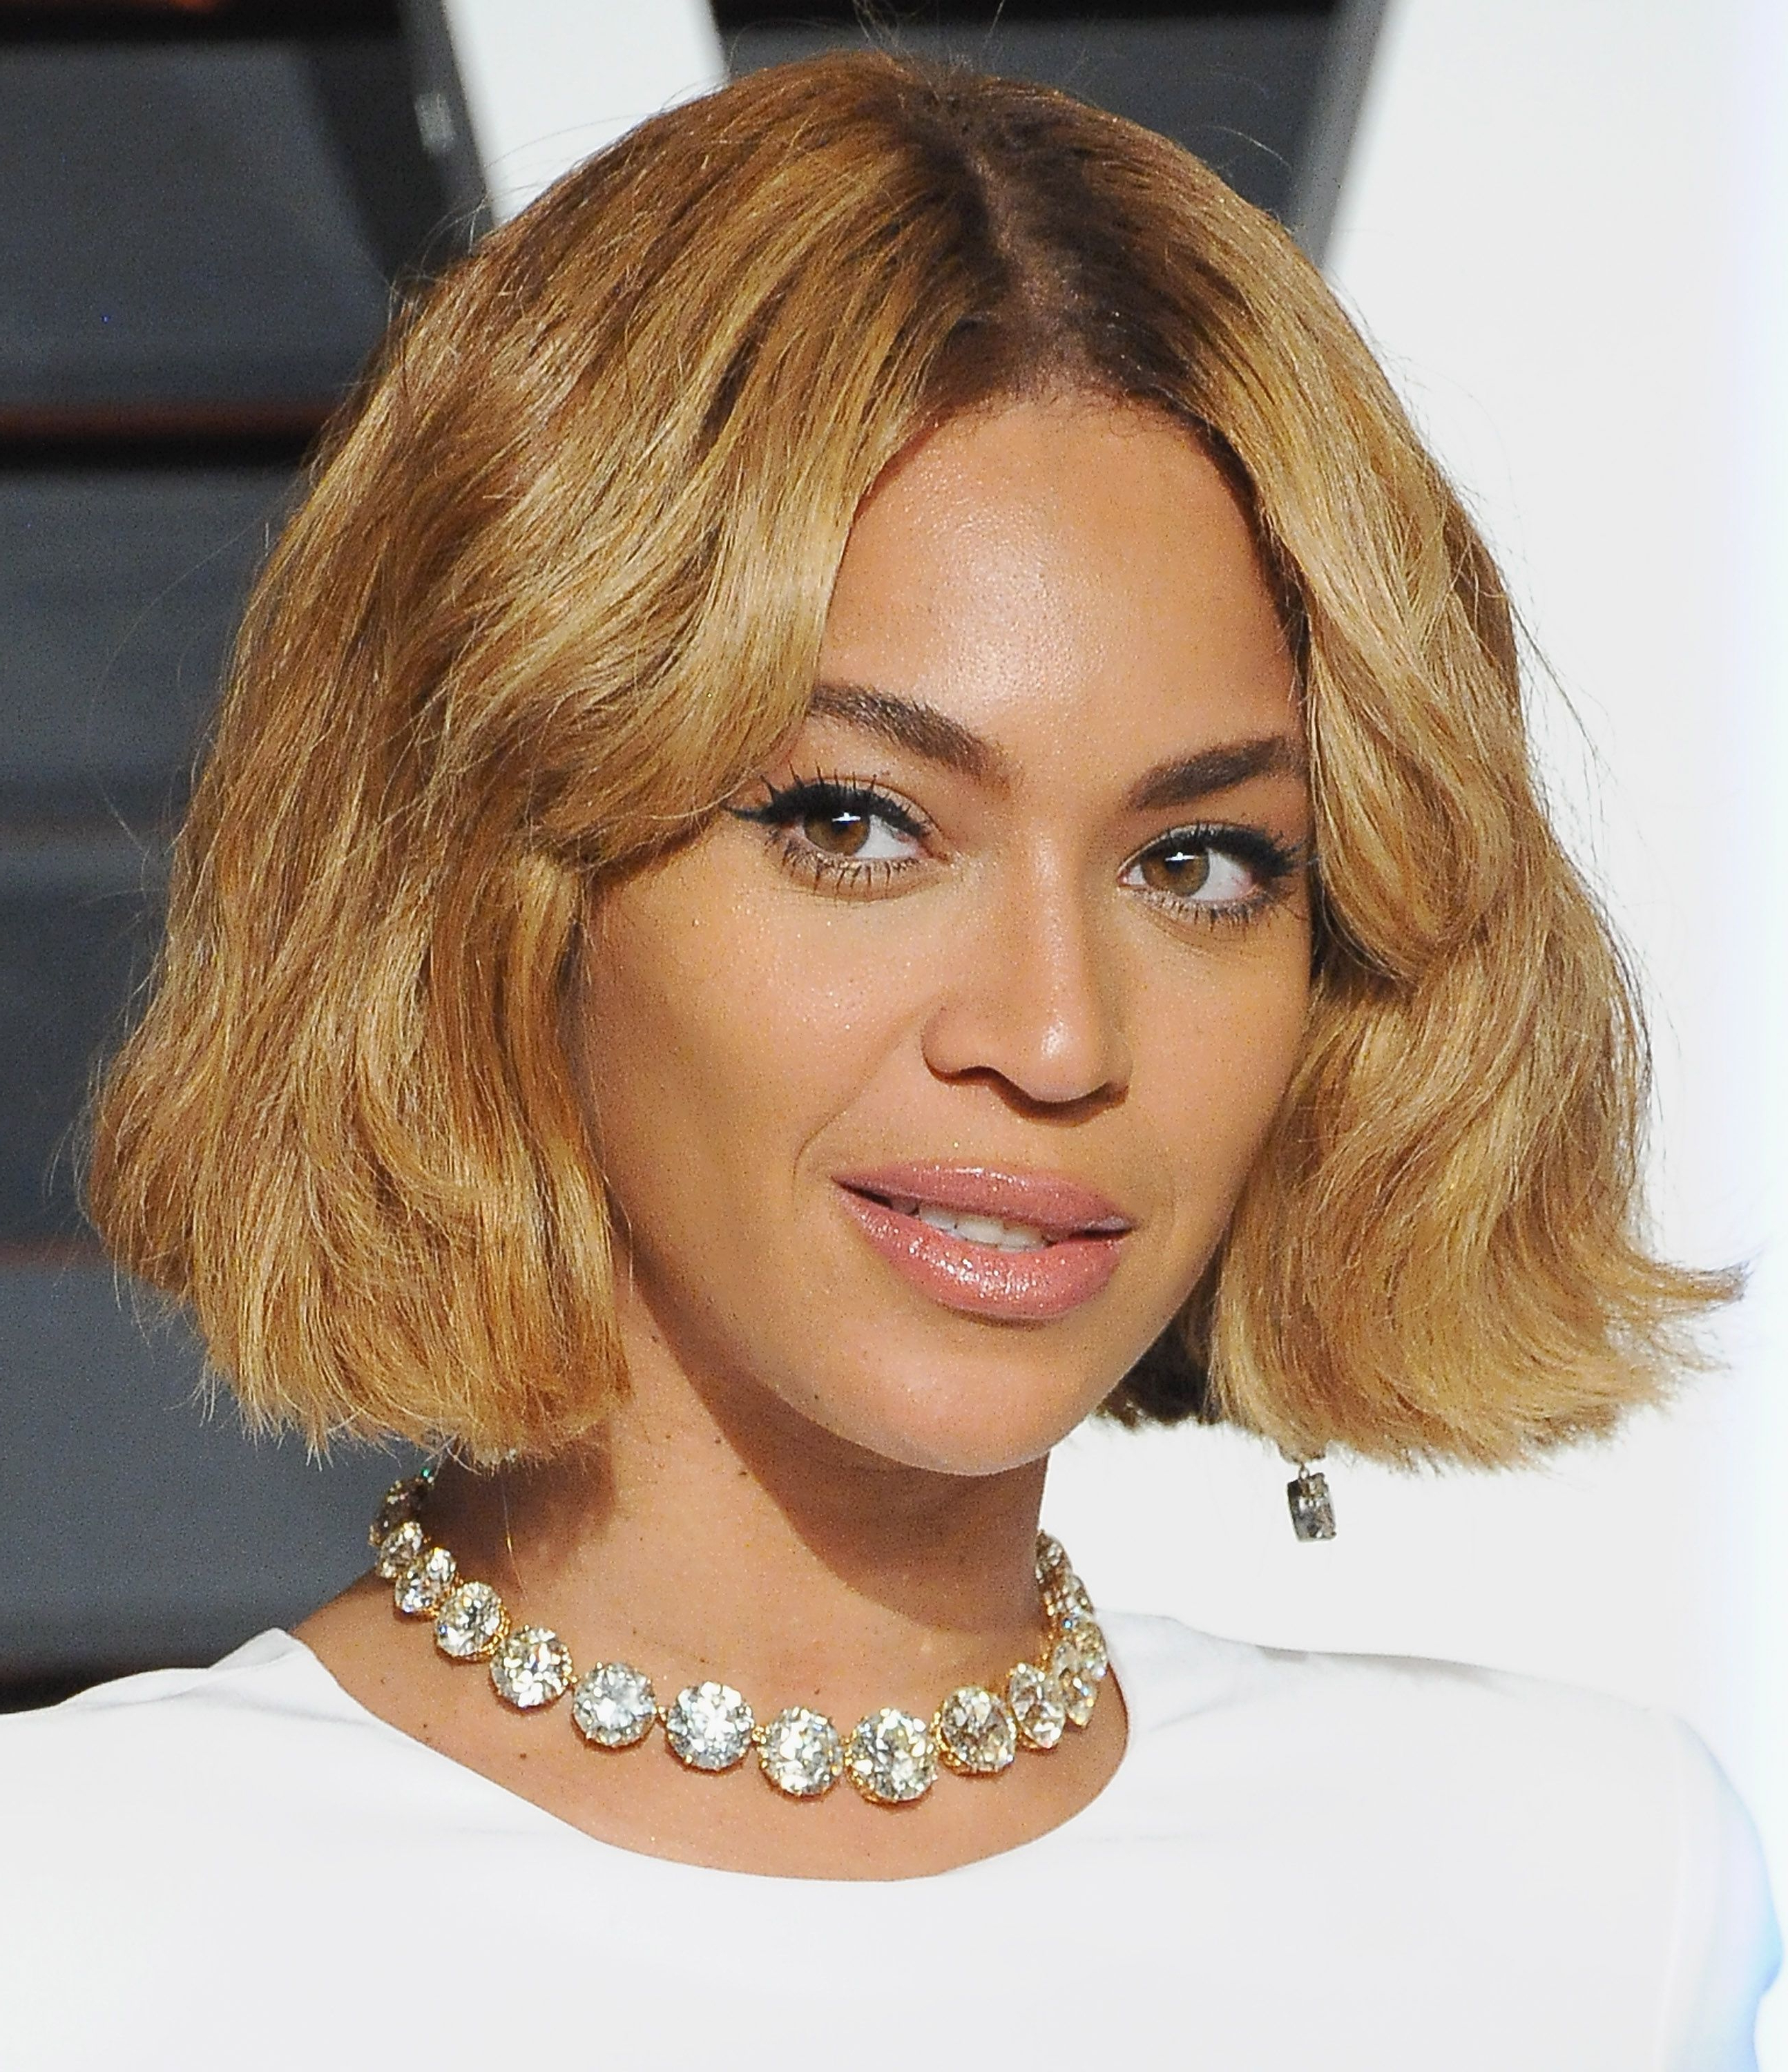 50 Best Bob Styles Of 2018 – Bob Haircuts & Hairstyles For Women In Short Haircuts Bobs Crops (View 20 of 26)